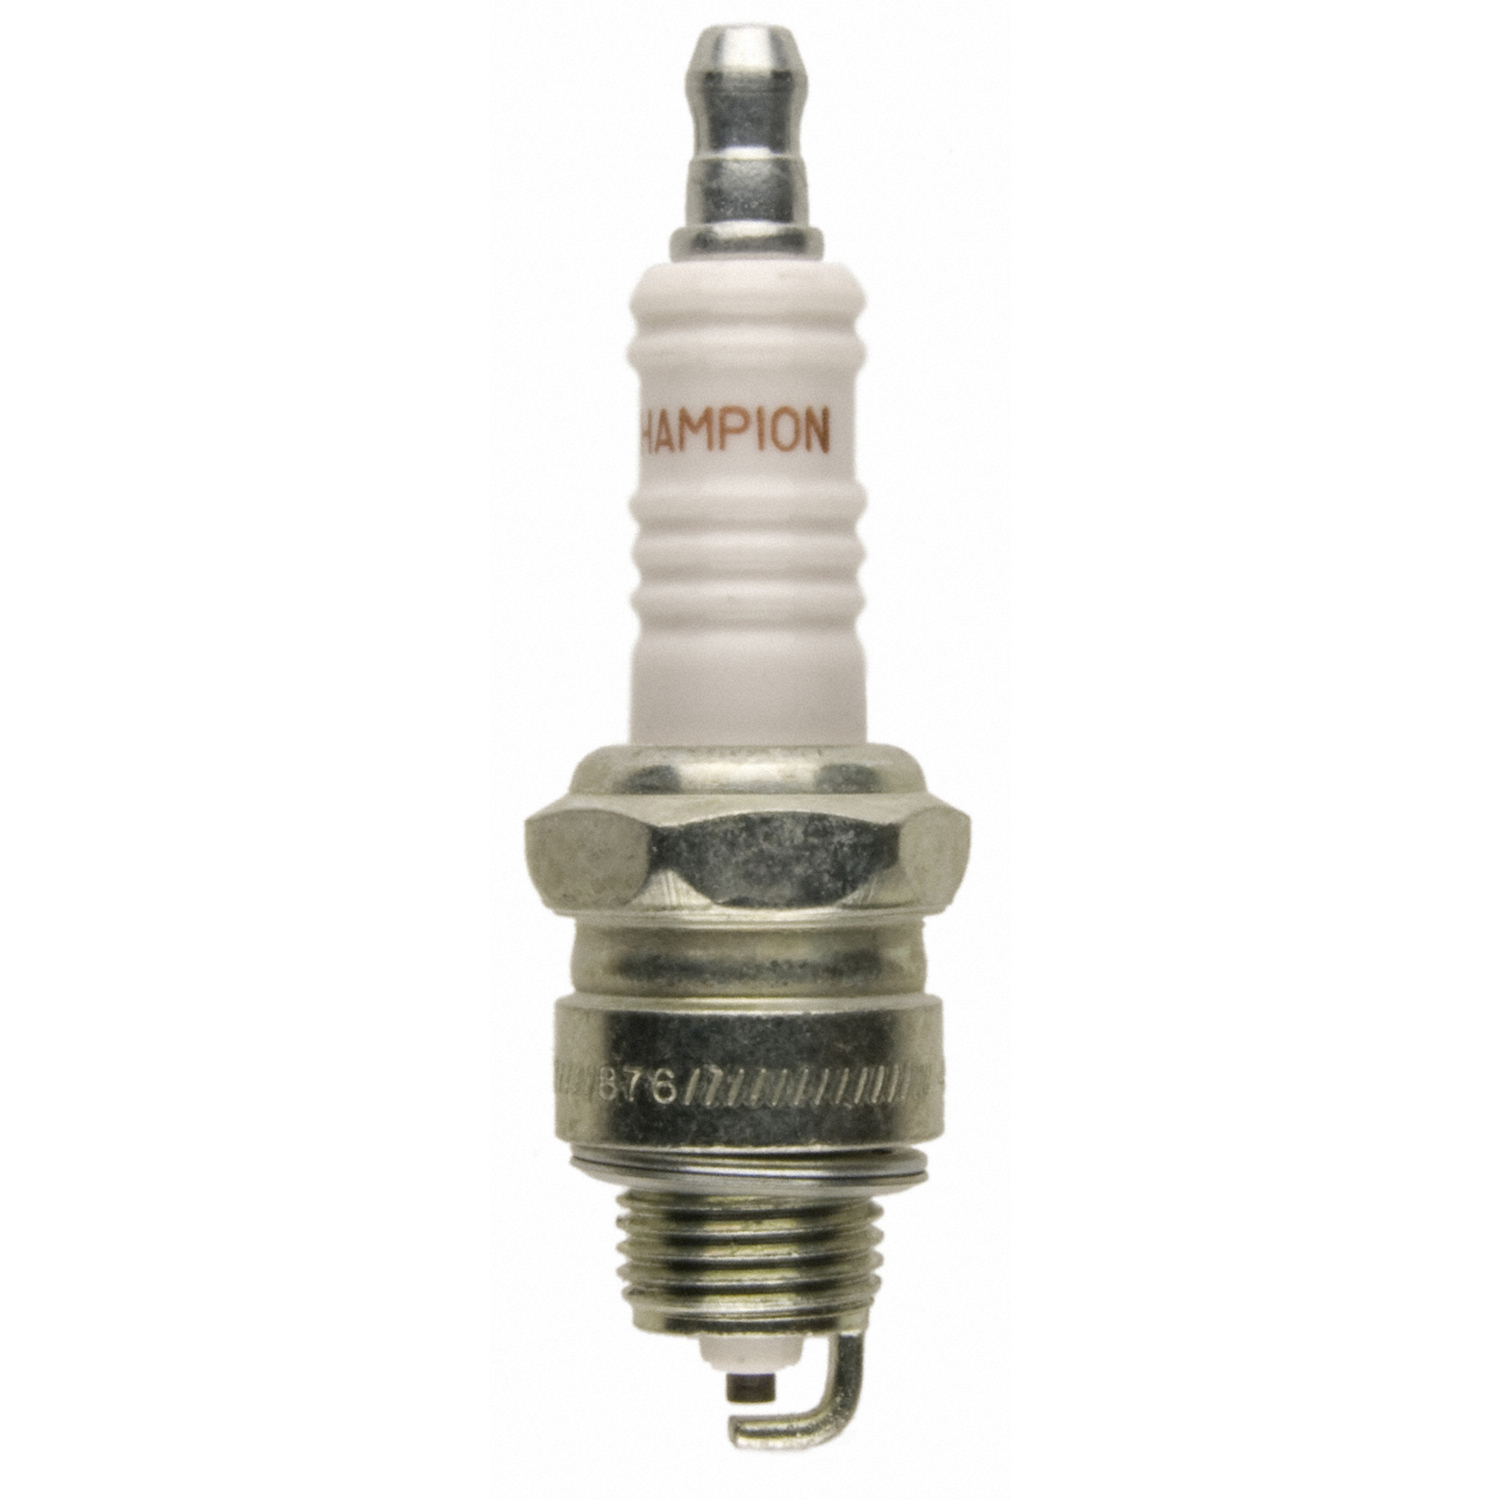 CHAMPION SPARK PLUGS - Copper Plus - CHA 58